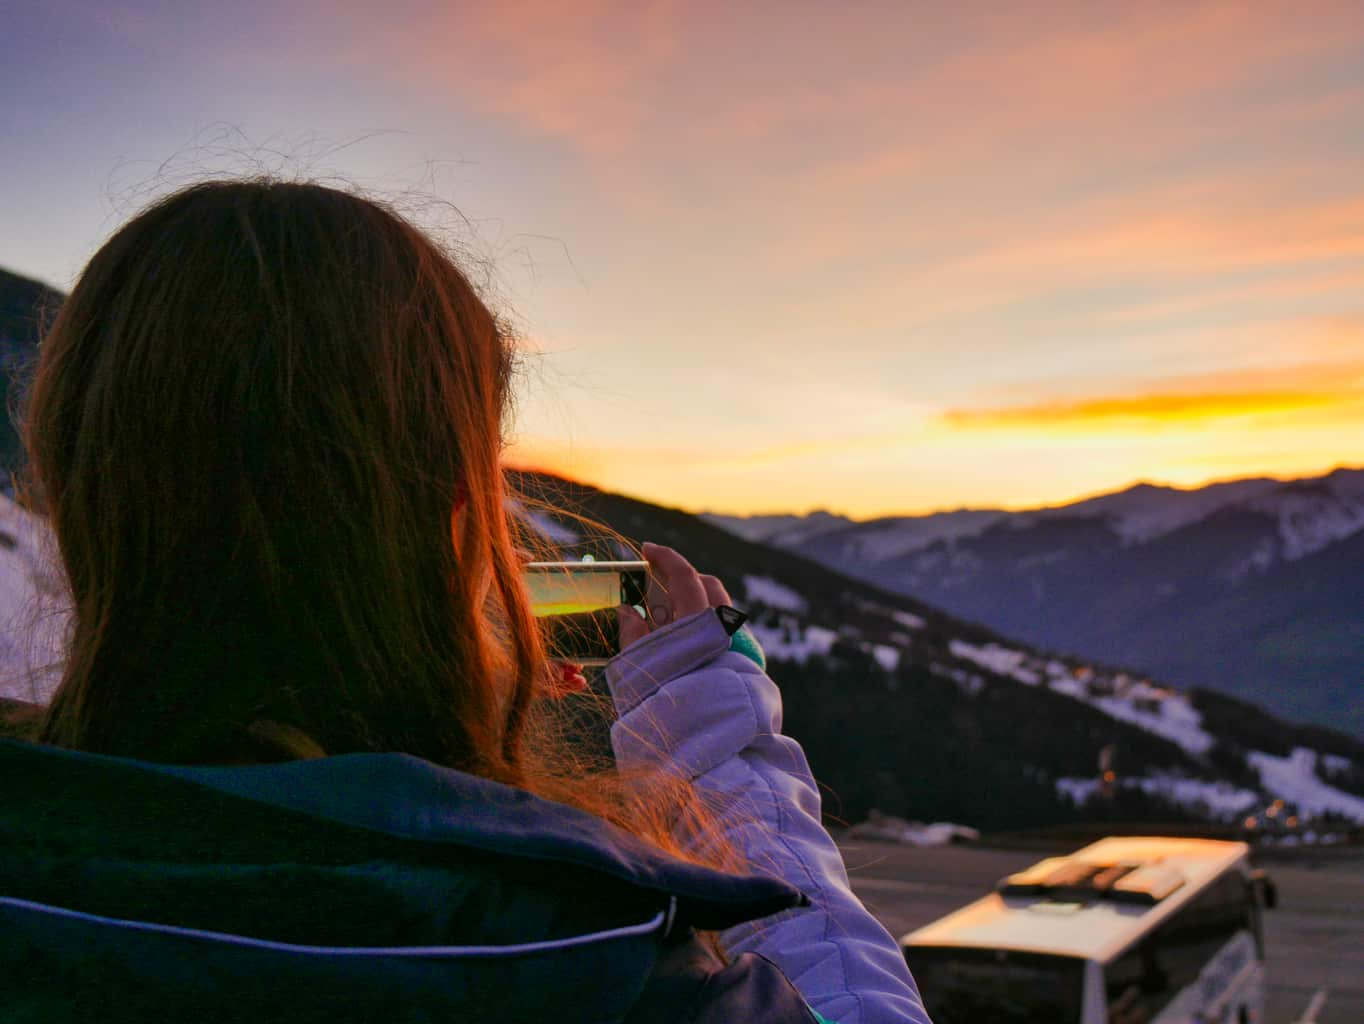 Kalyn taking a picture of the sunset over the French Alps